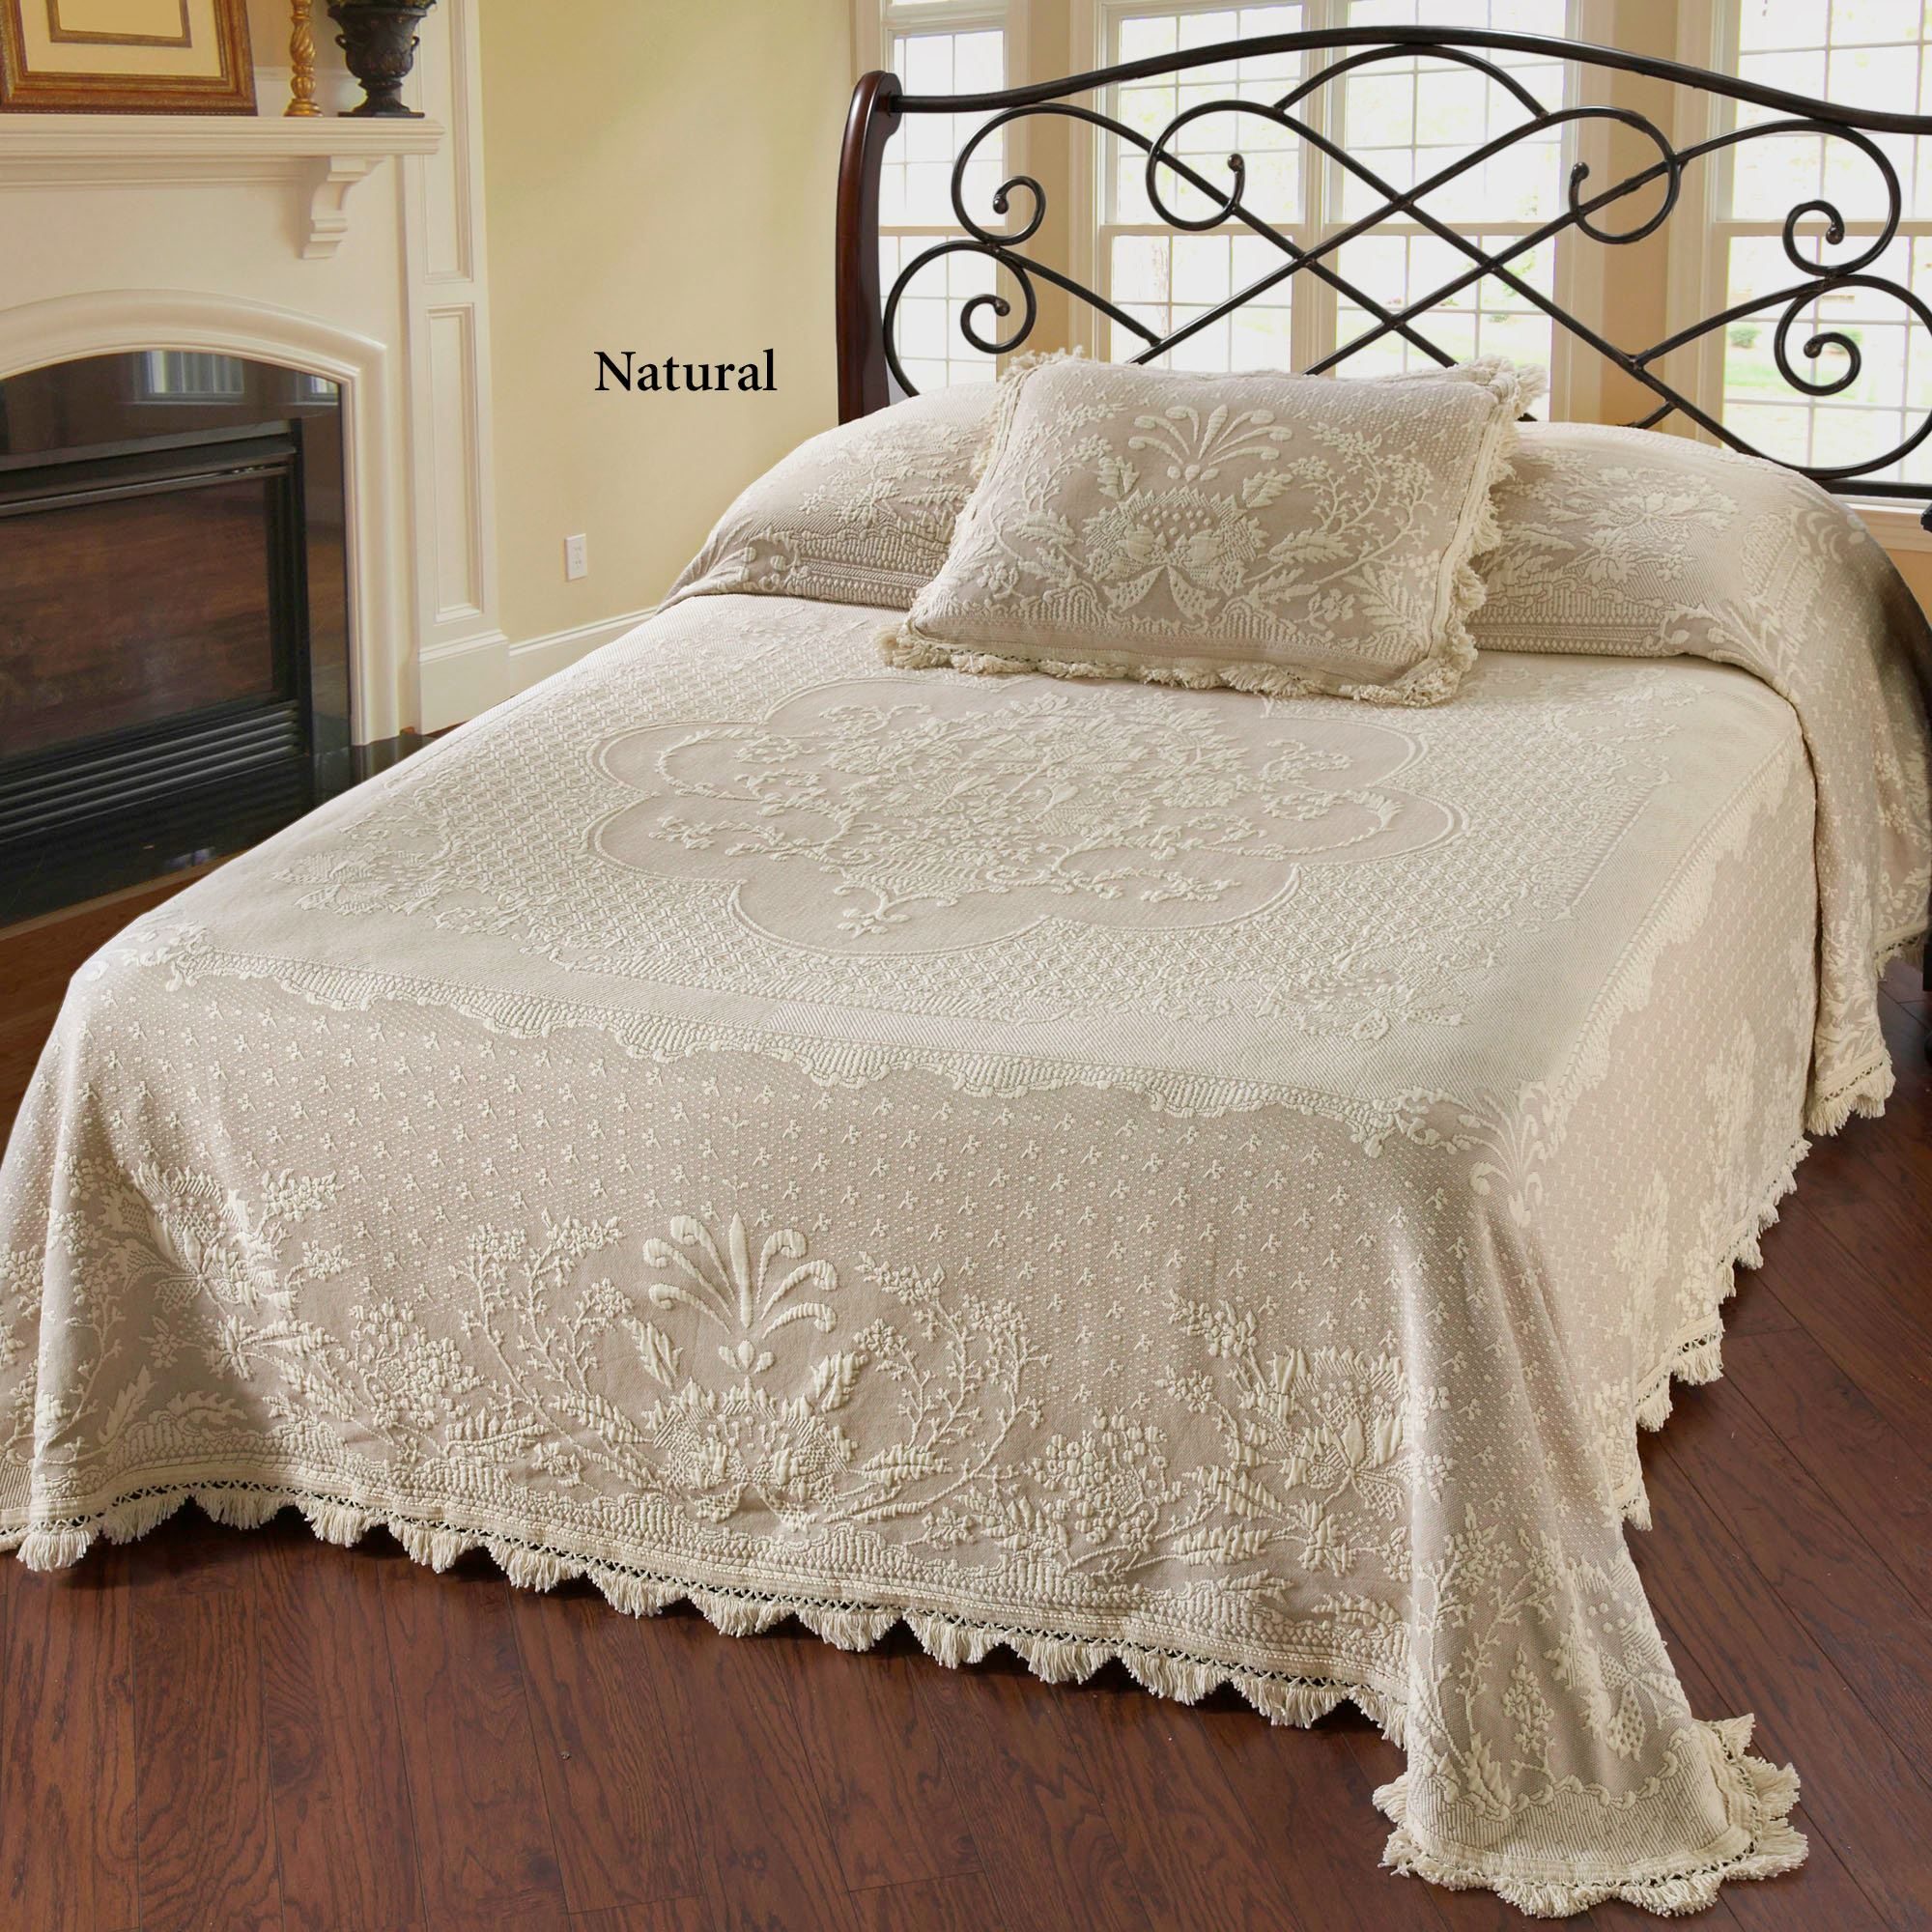 Awesome Abigail Adams Matelasse Bedspread. Click To Expand